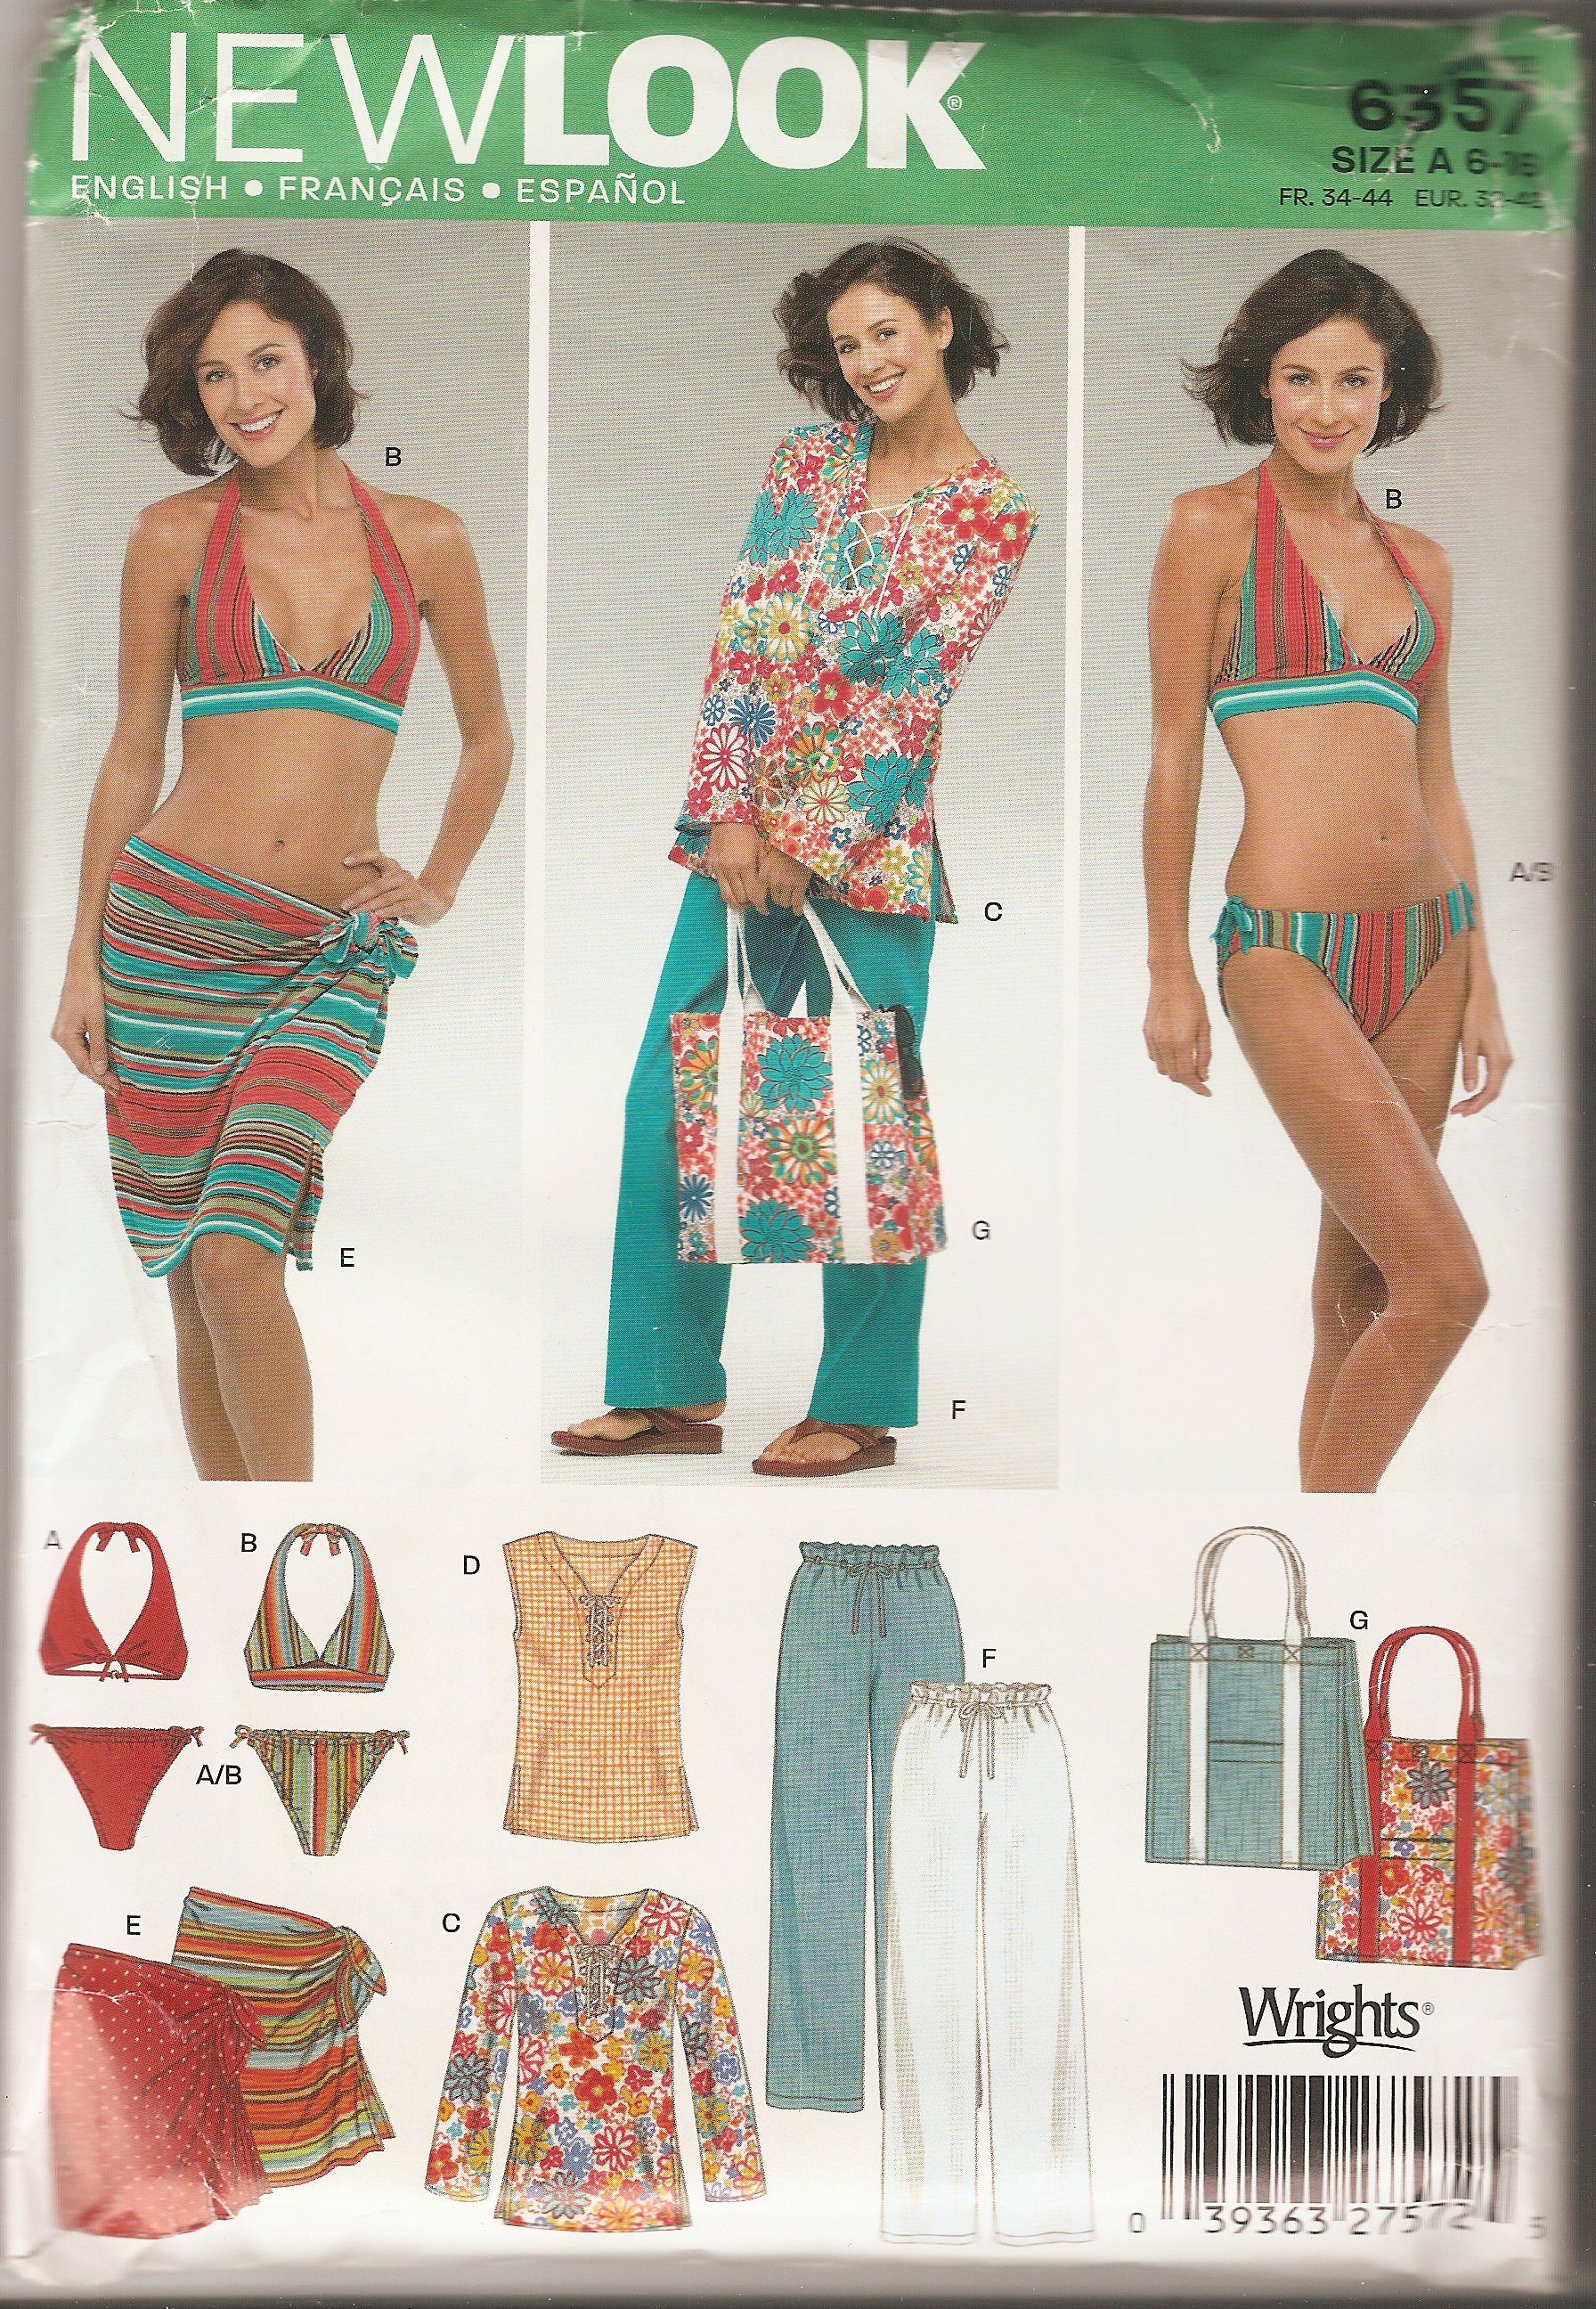 New Look Simplicity sewing pattern 6357 misses\' sizes 6-16 swimwear ...